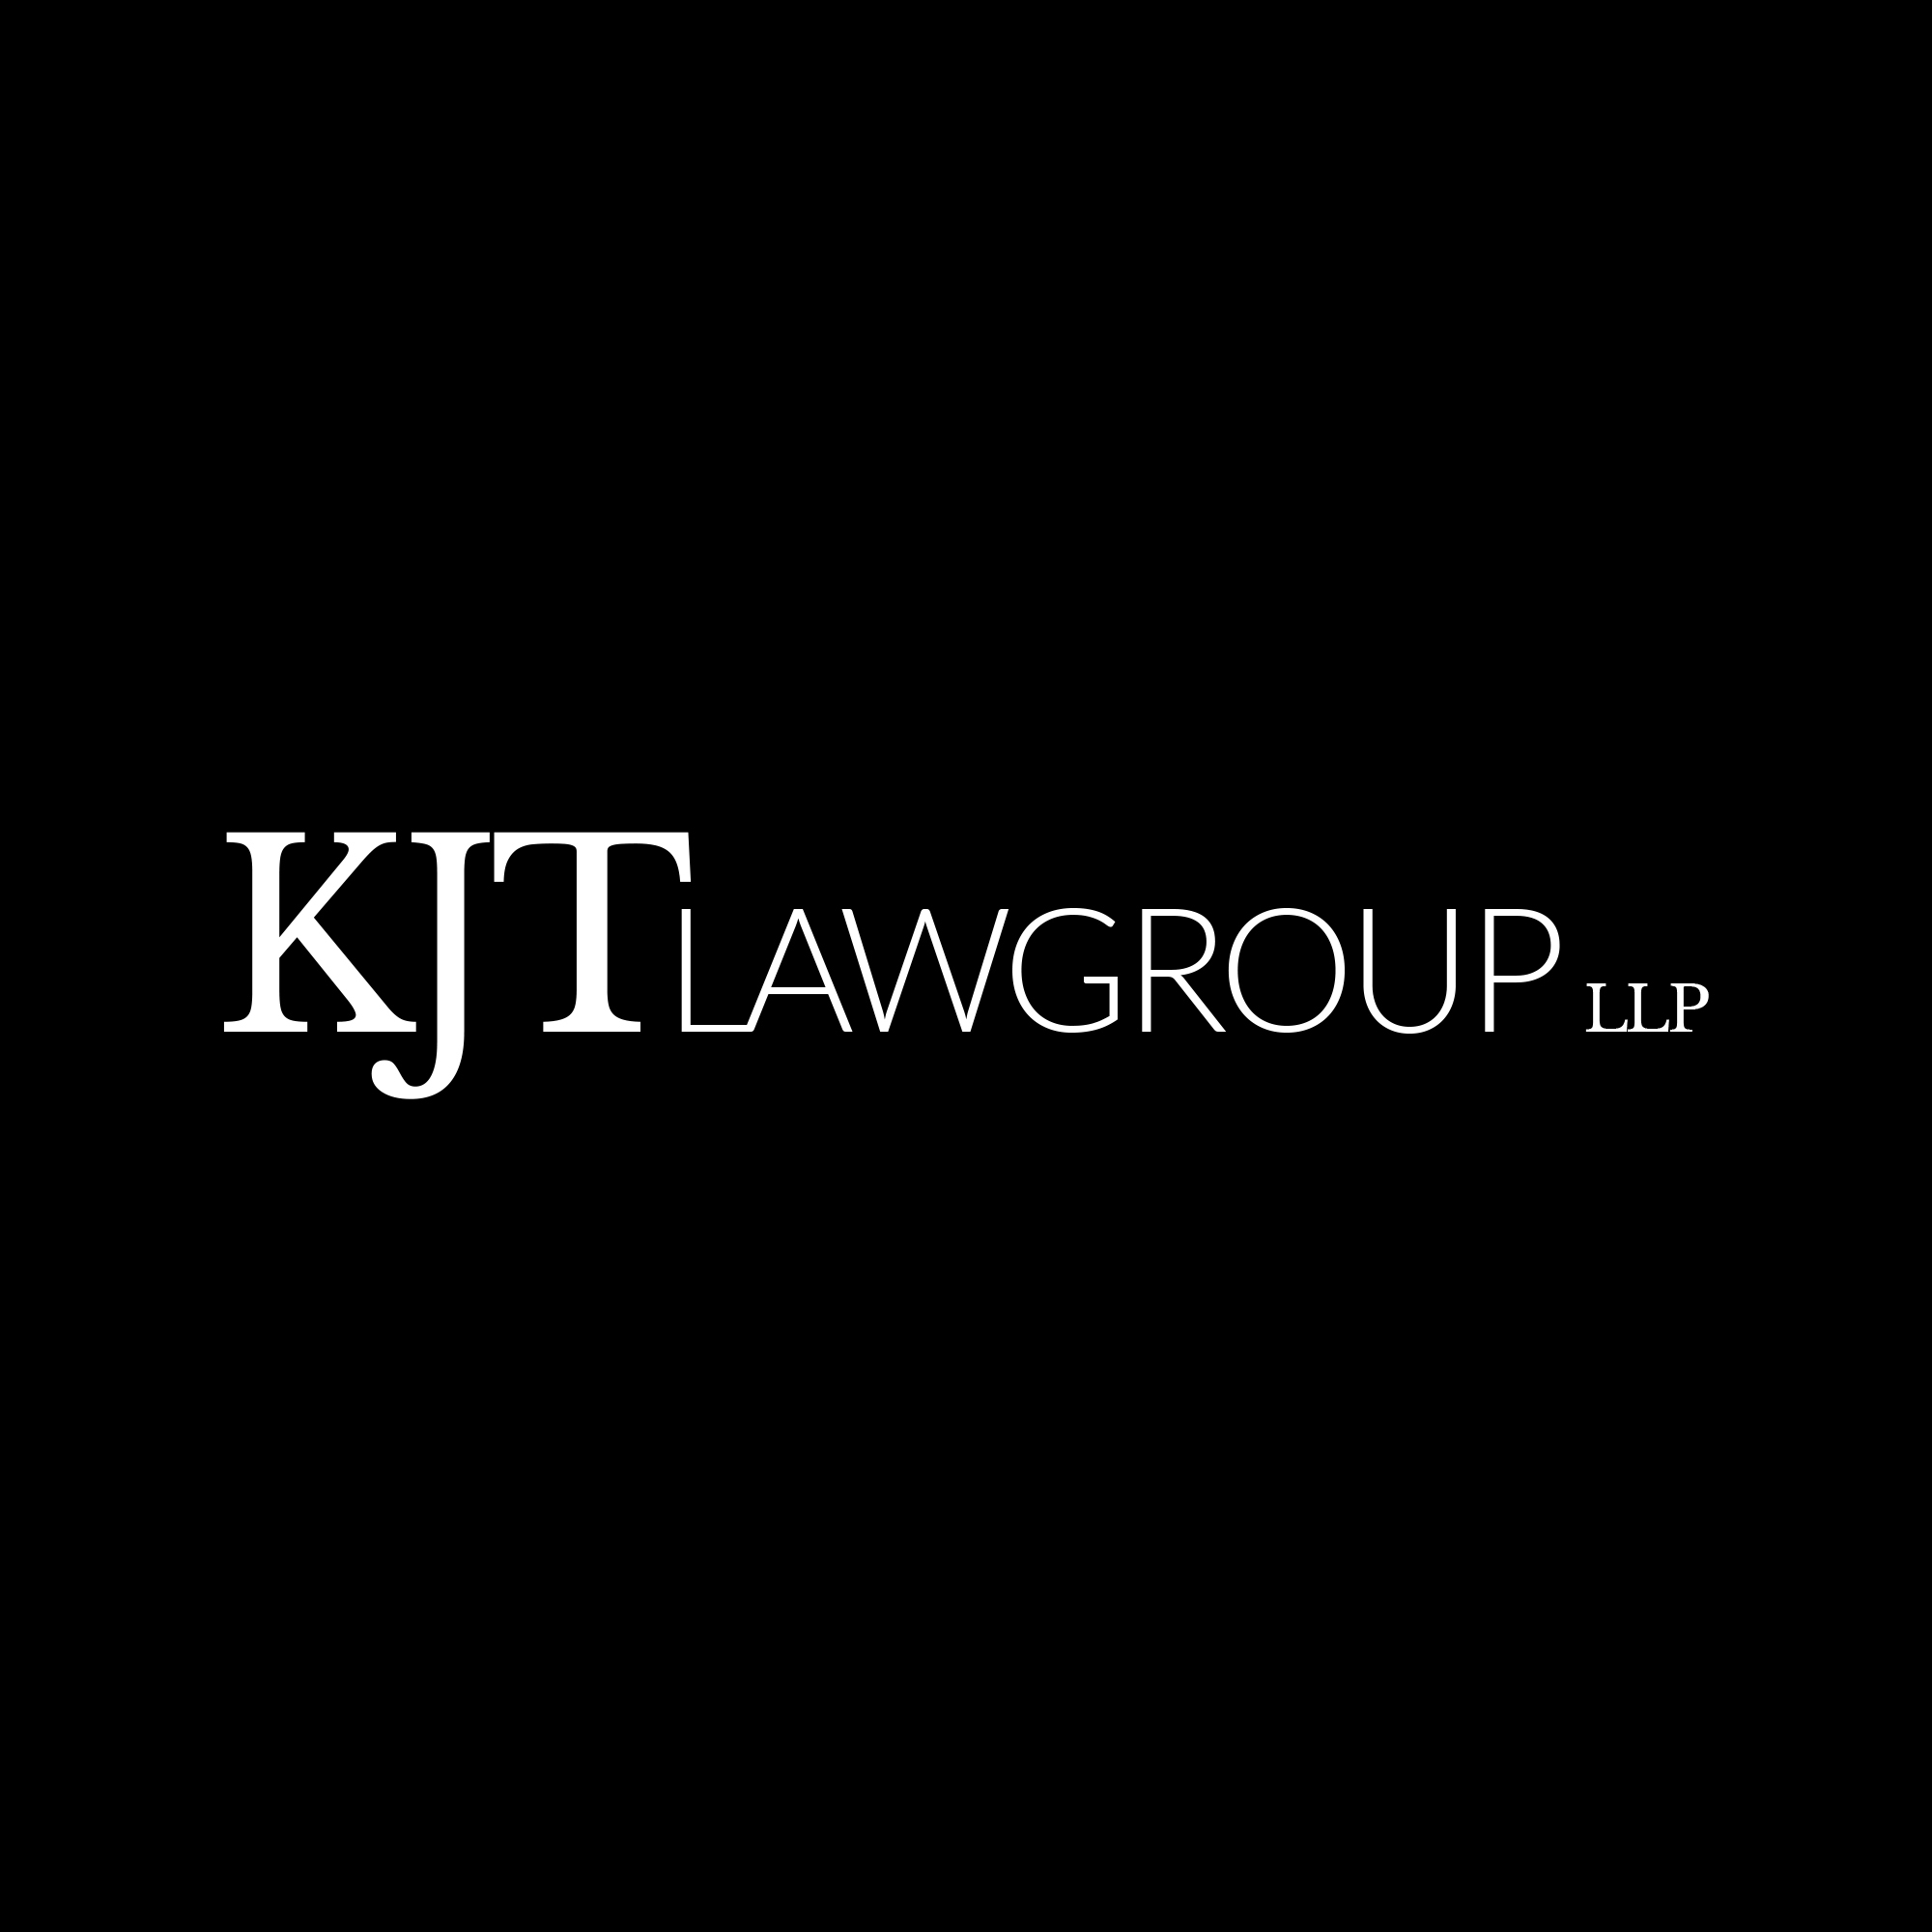 KJT Law Group LLP